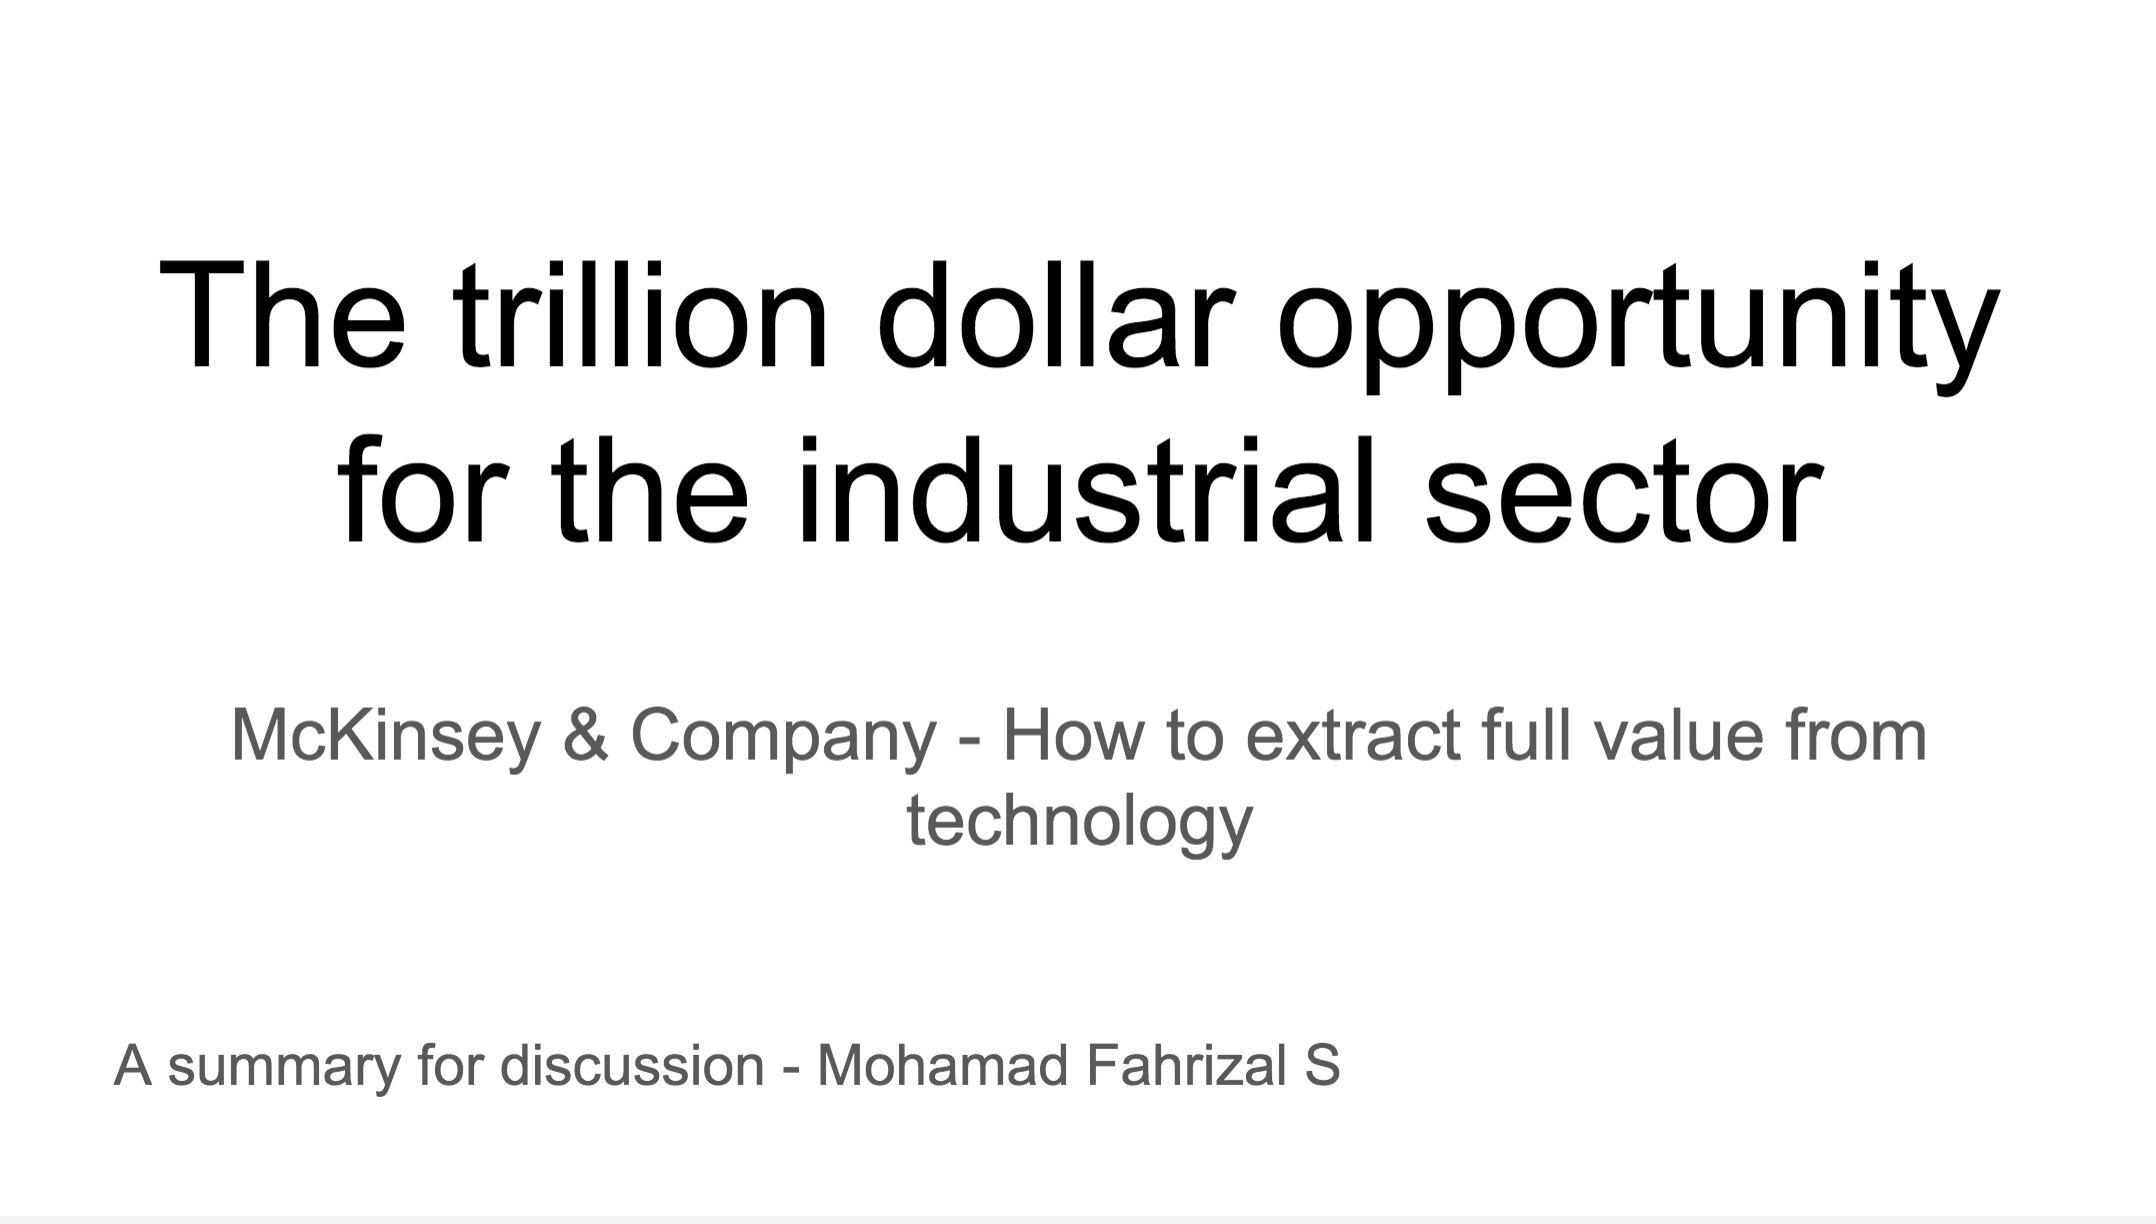 The trillion dollar opportunity for the industrial sector